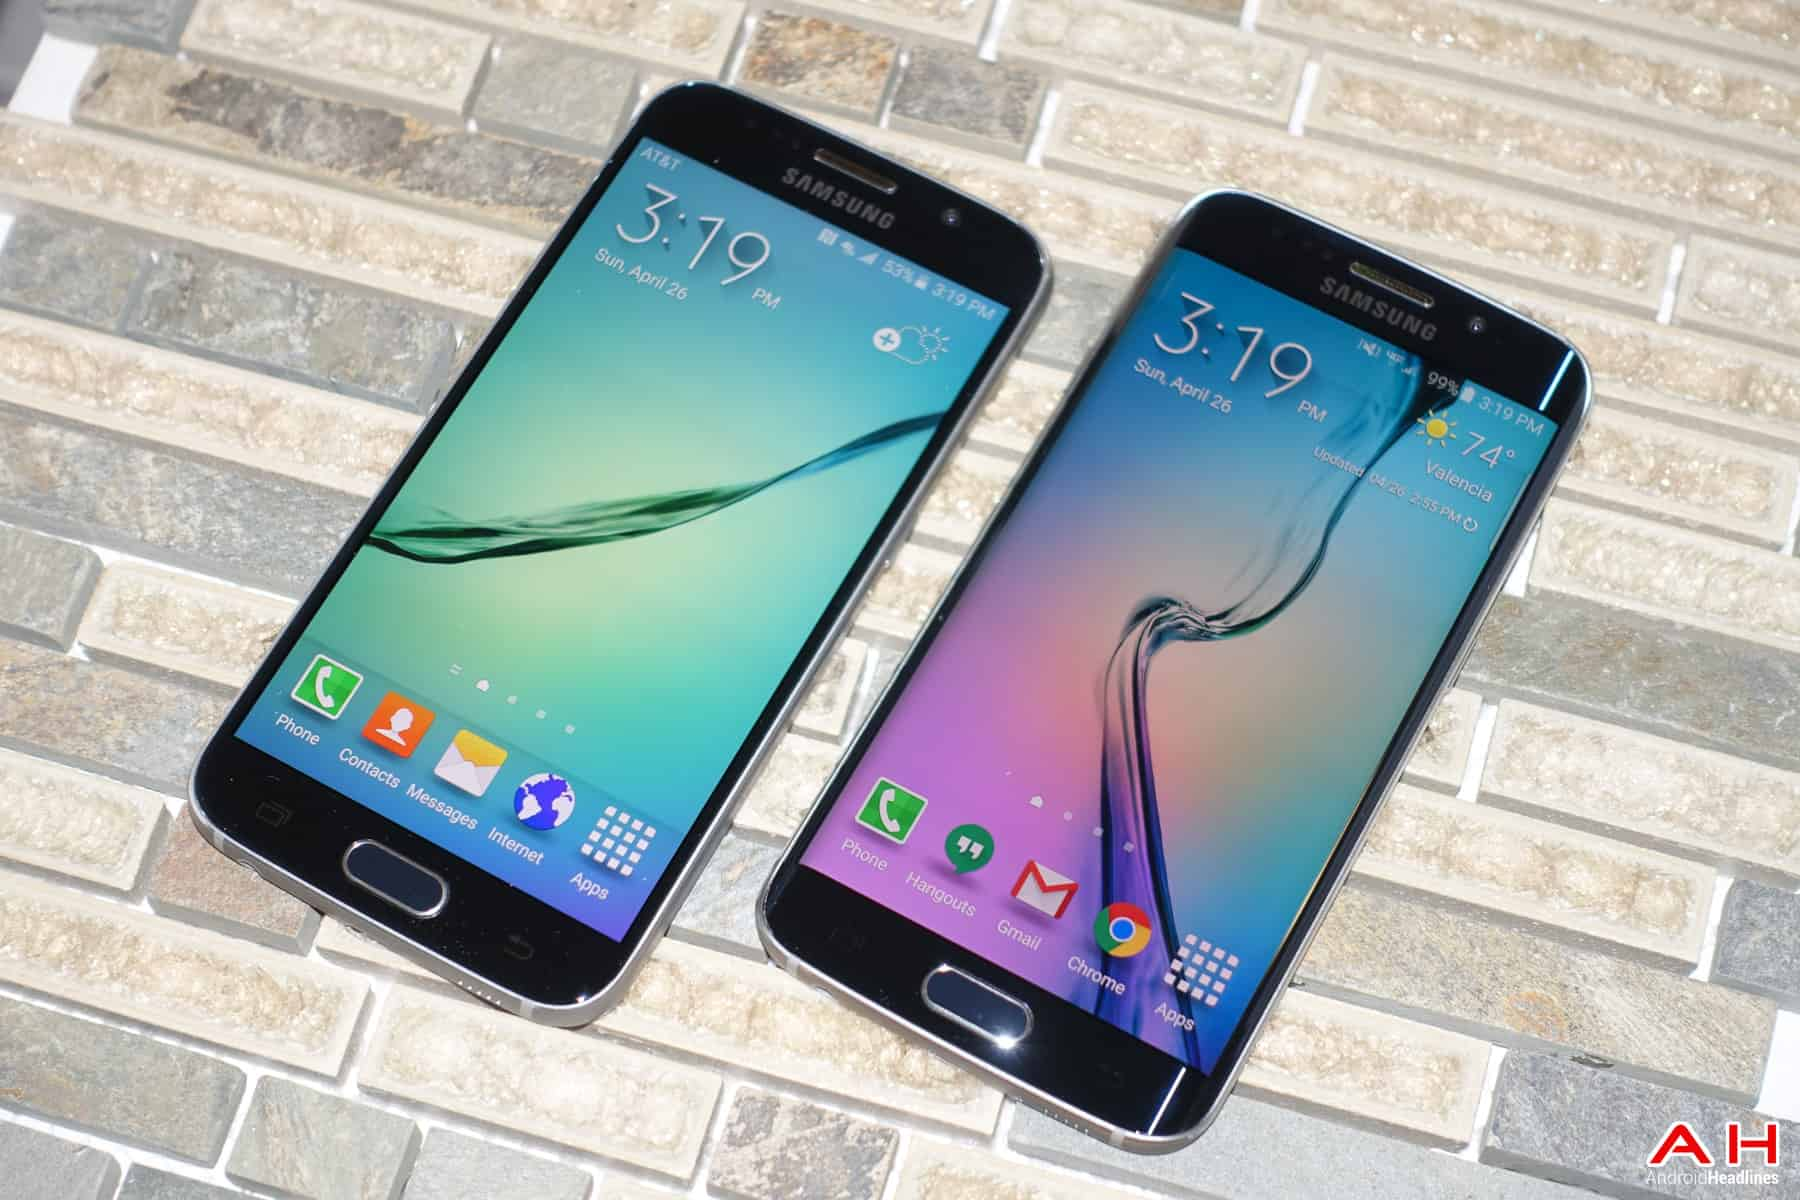 AH Samsung Galaxy S6 & Edge May 3rd - Chris-1